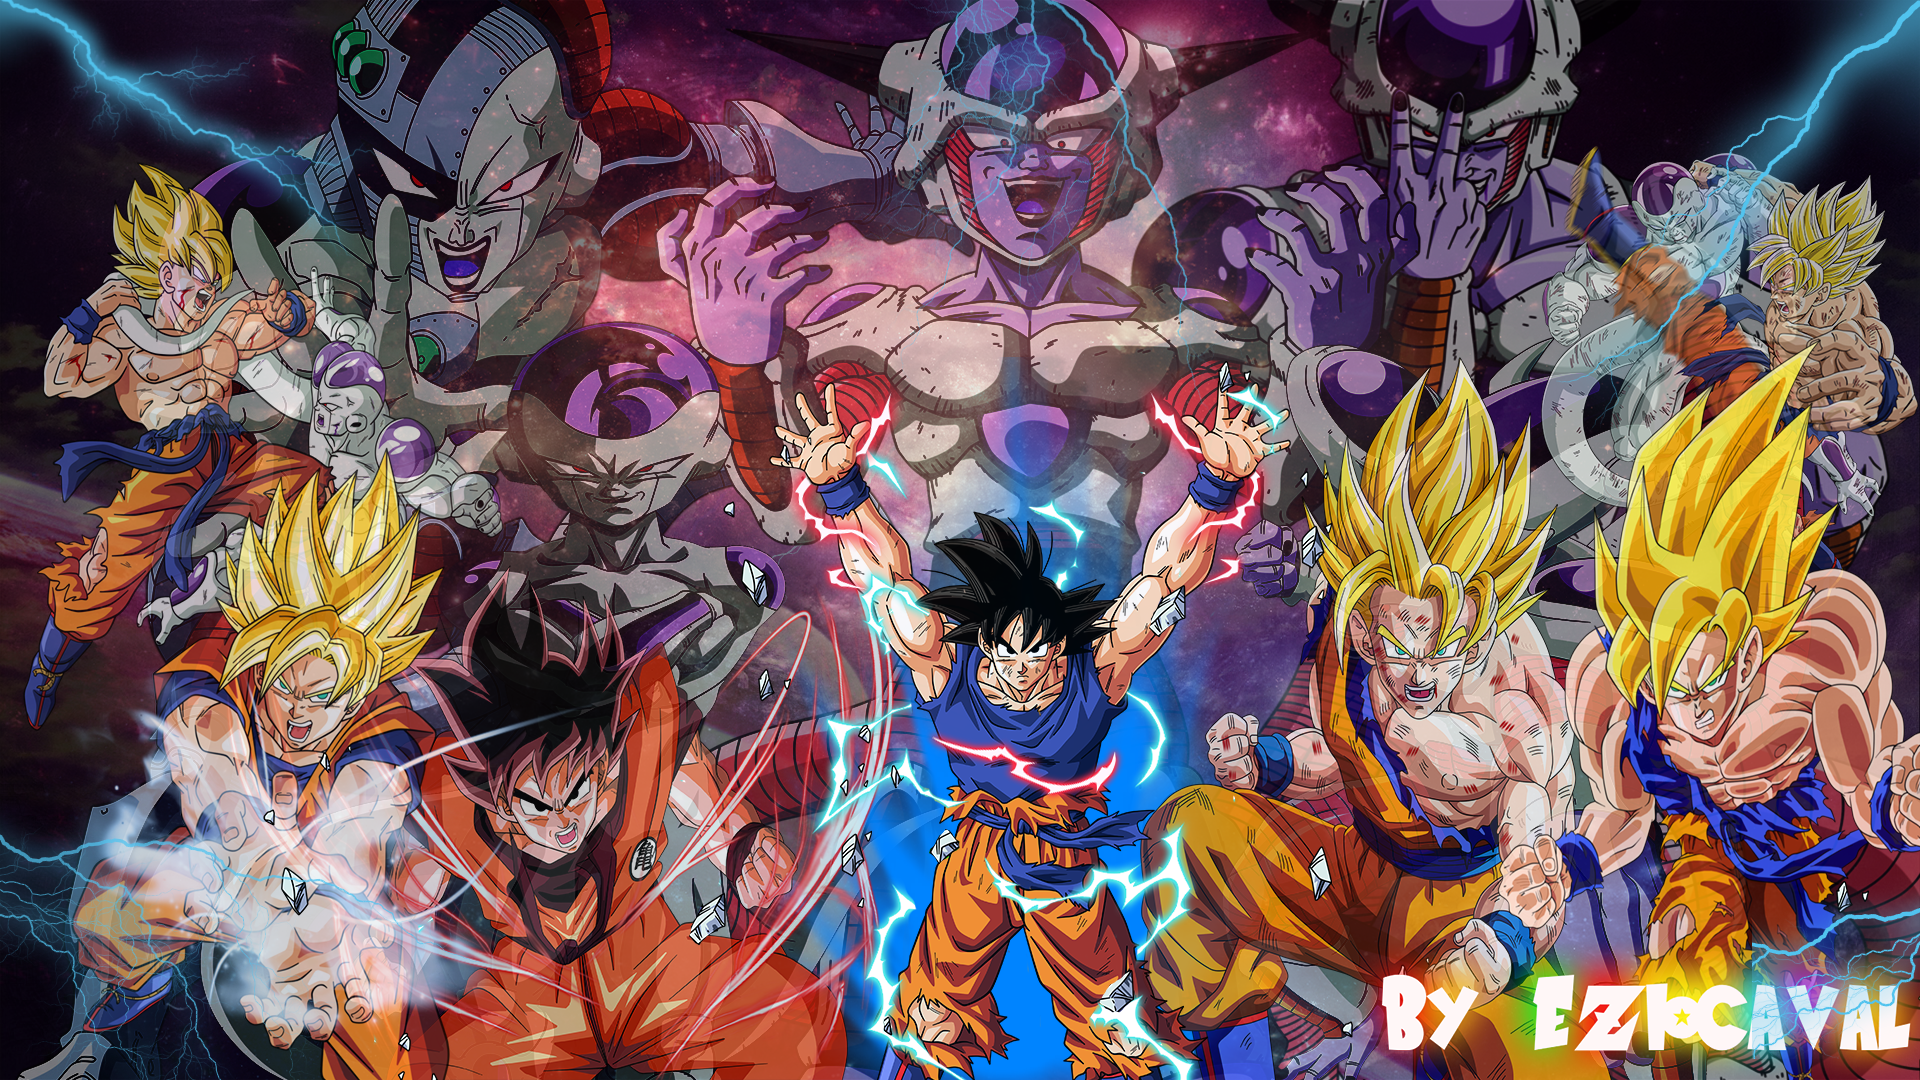 Dibujo De Goku Kakarotto Peleando Contra Vegeta Para: The Ultimate Fight: Goku VS Frieza (Freezer) By Eziocaval